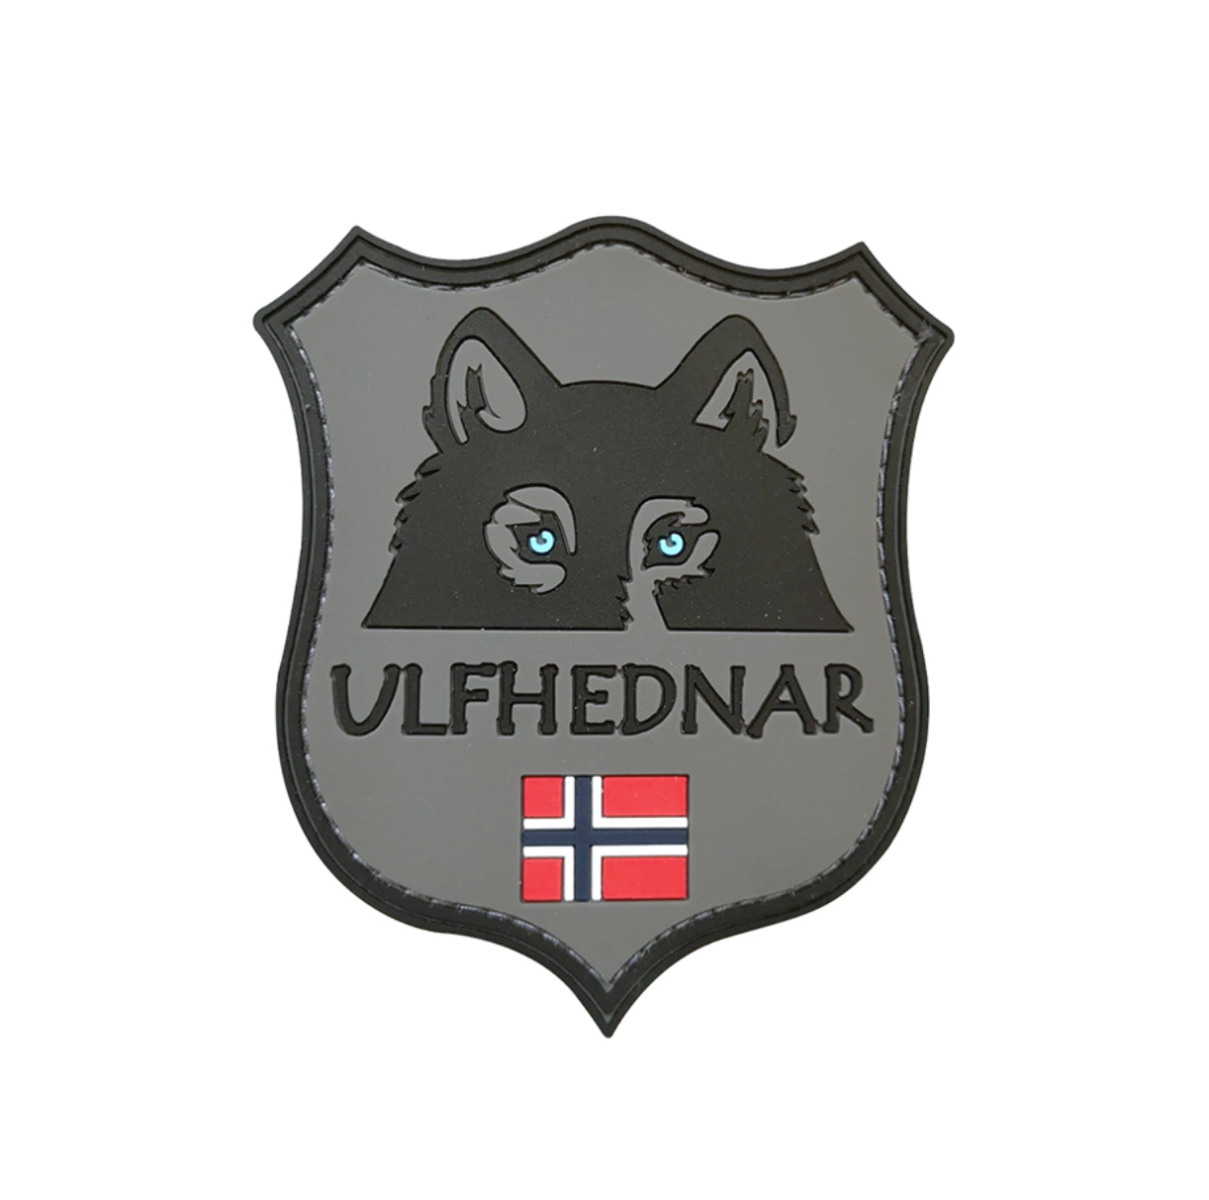 Ulfhednar Patches